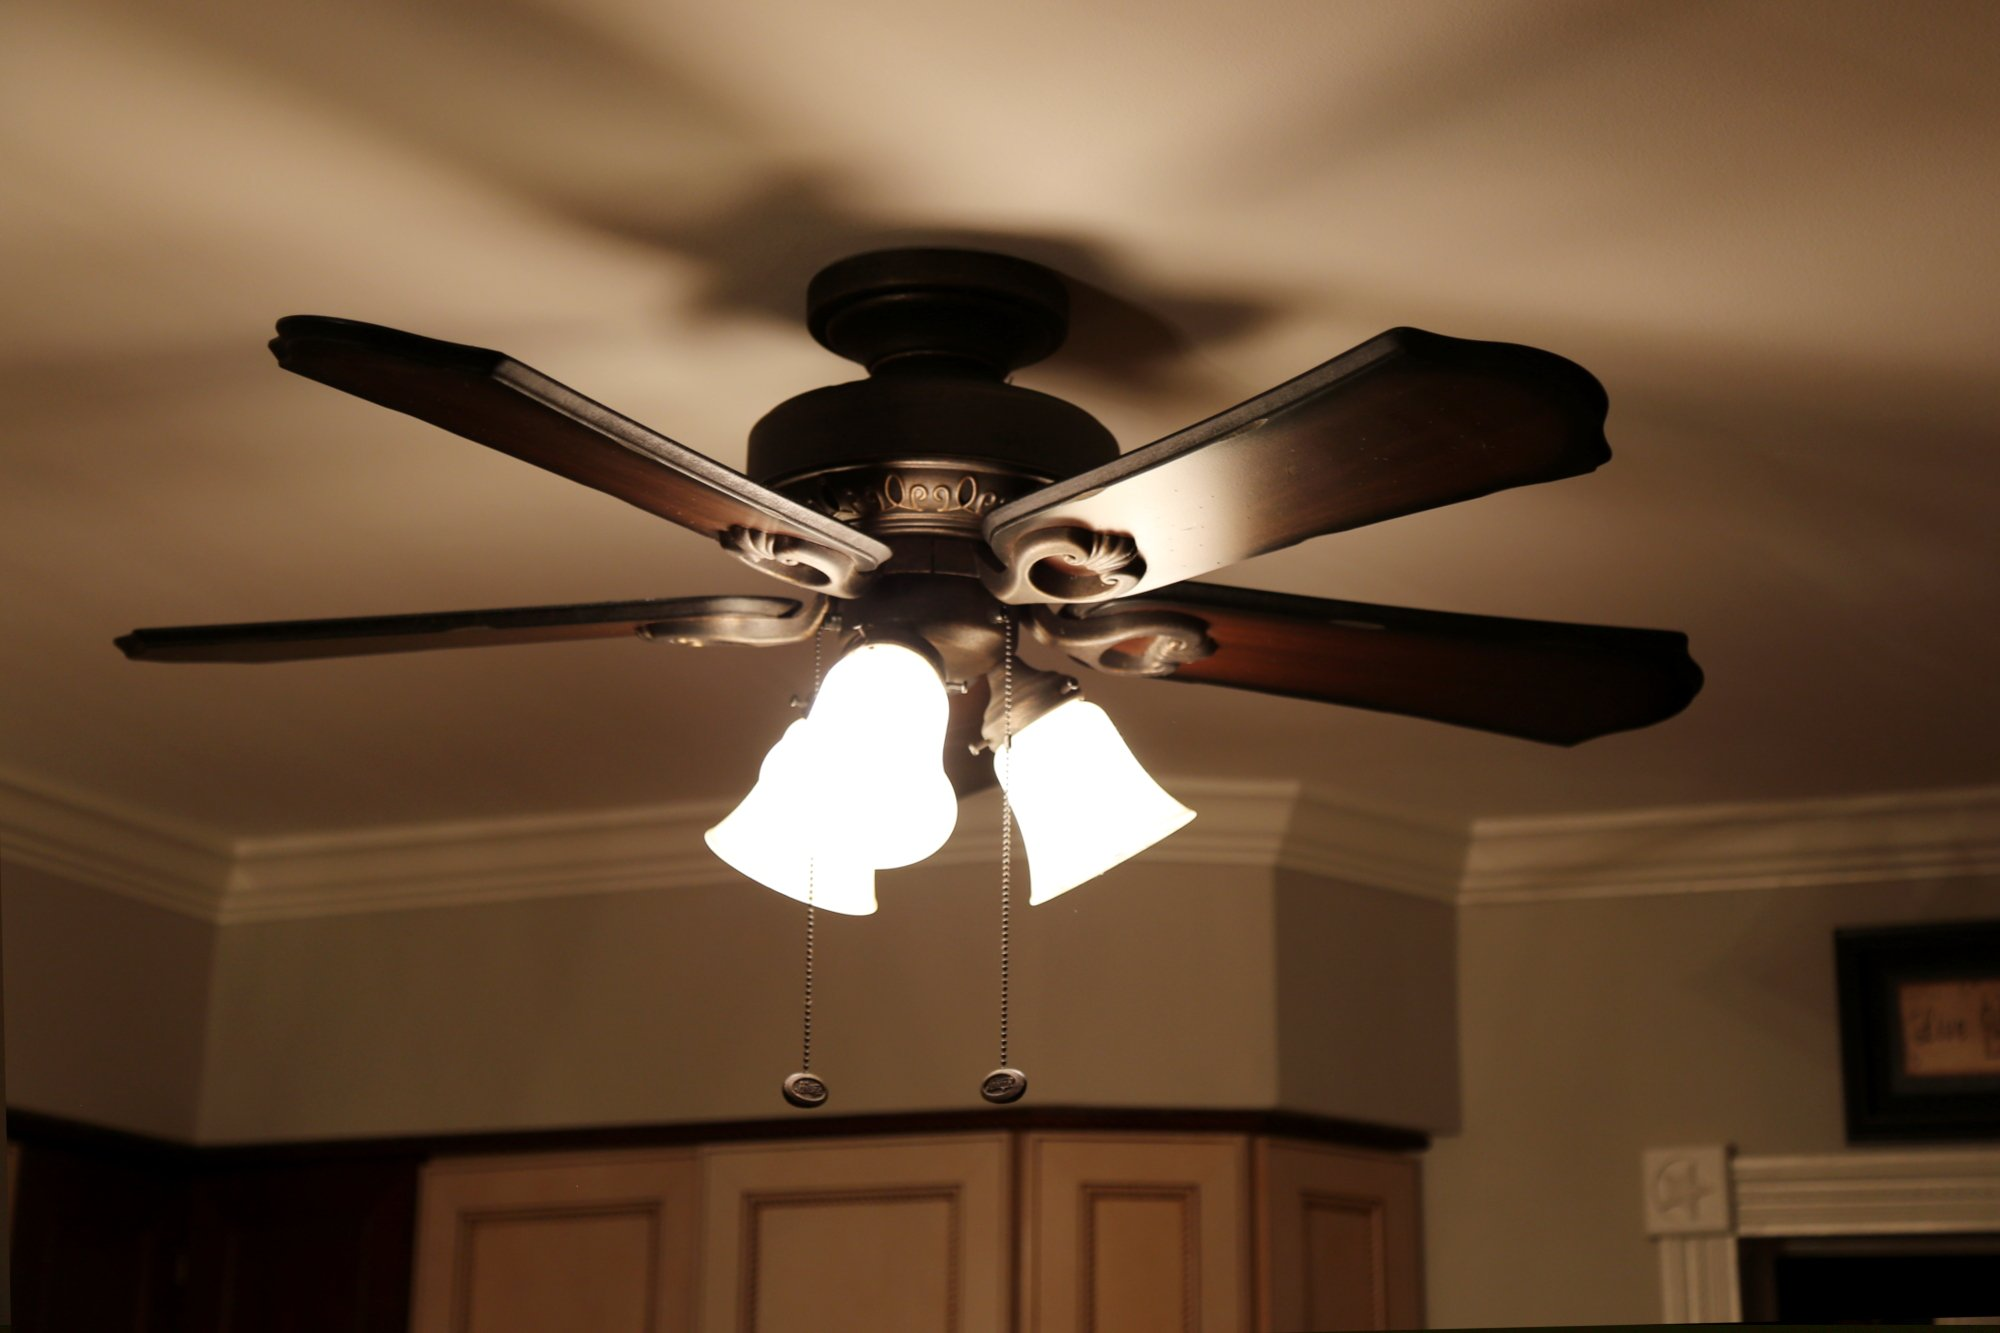 Electrical service in Crofton